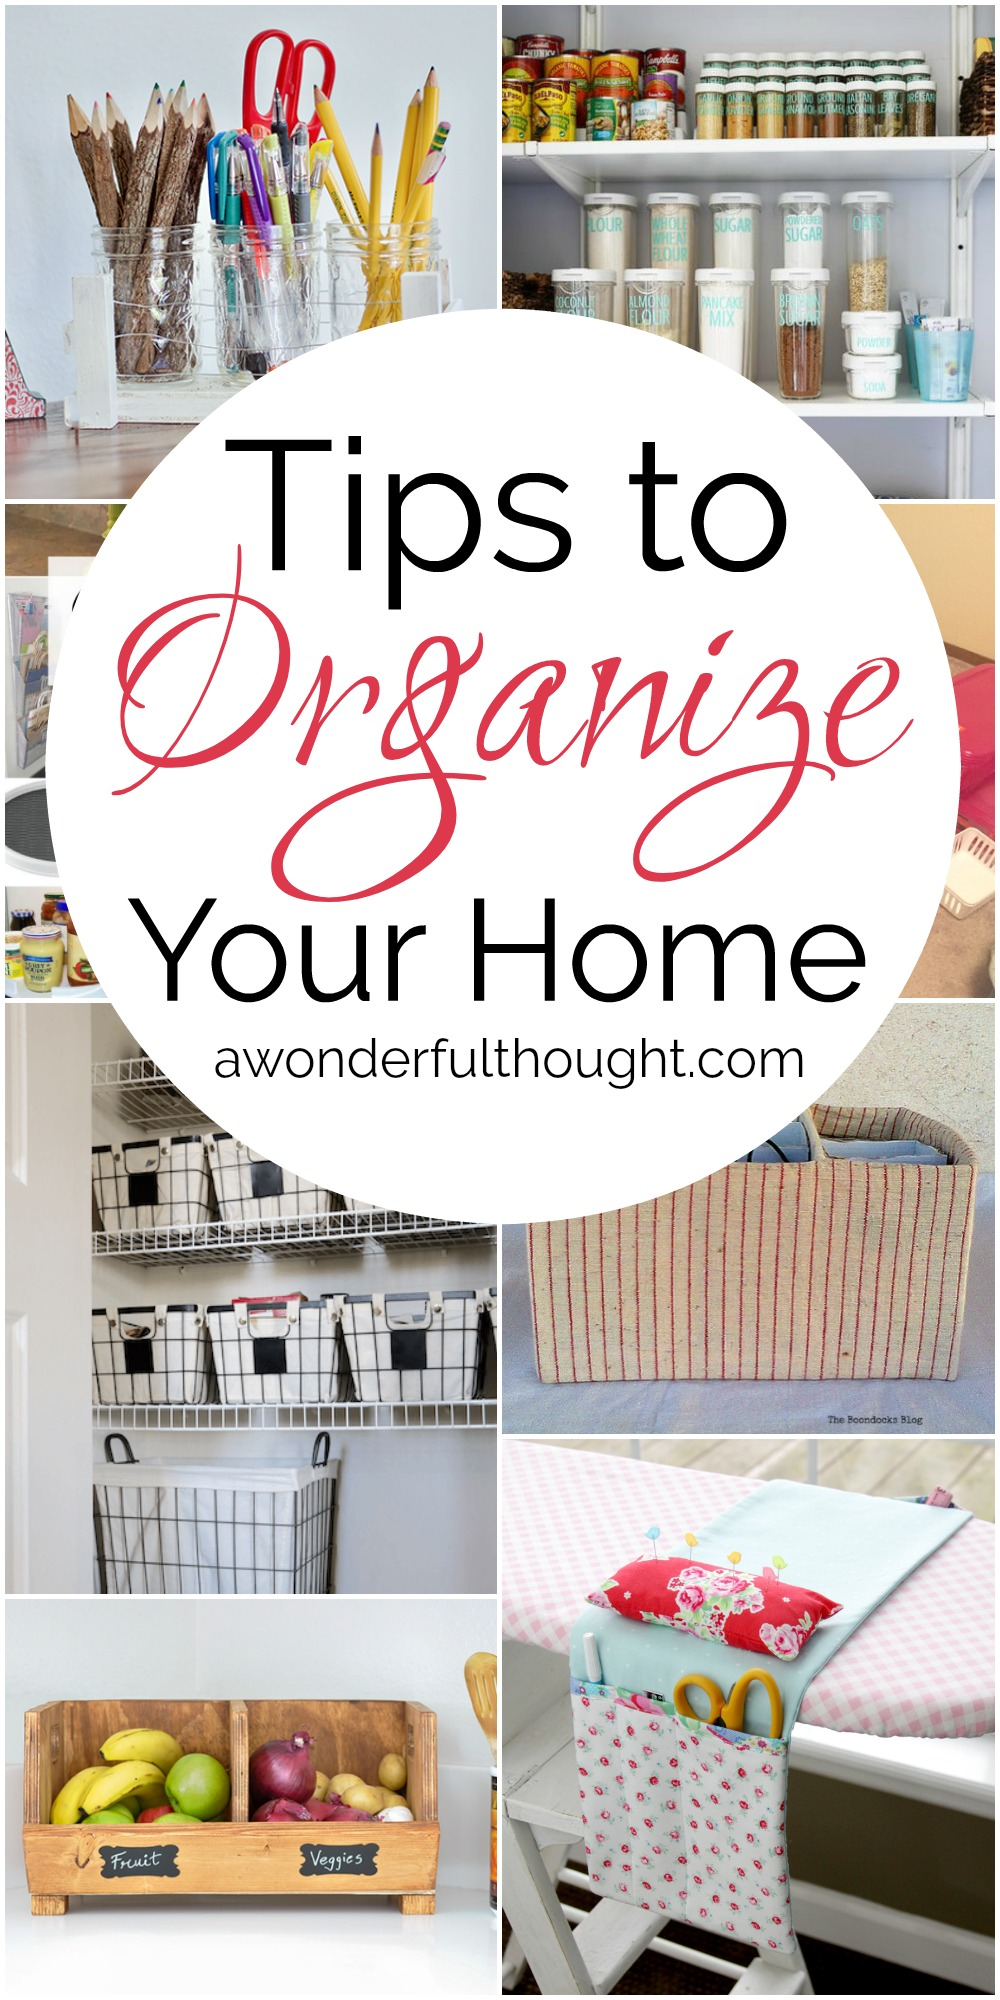 Tips to Organize Your Home | MM #188 - A Wonderful Thought